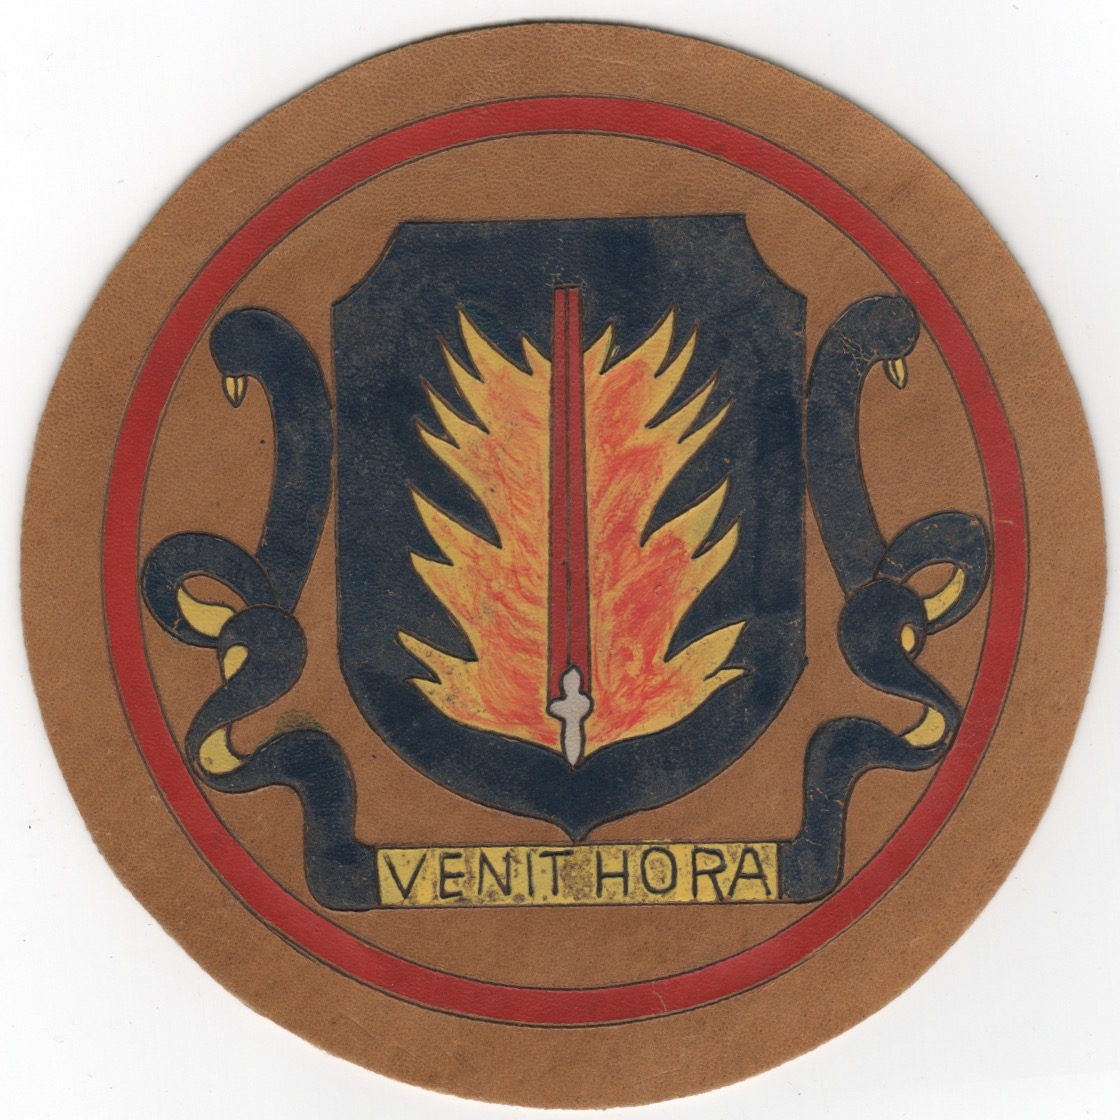 WWII LEATHER PATCH (VENIT HORA)